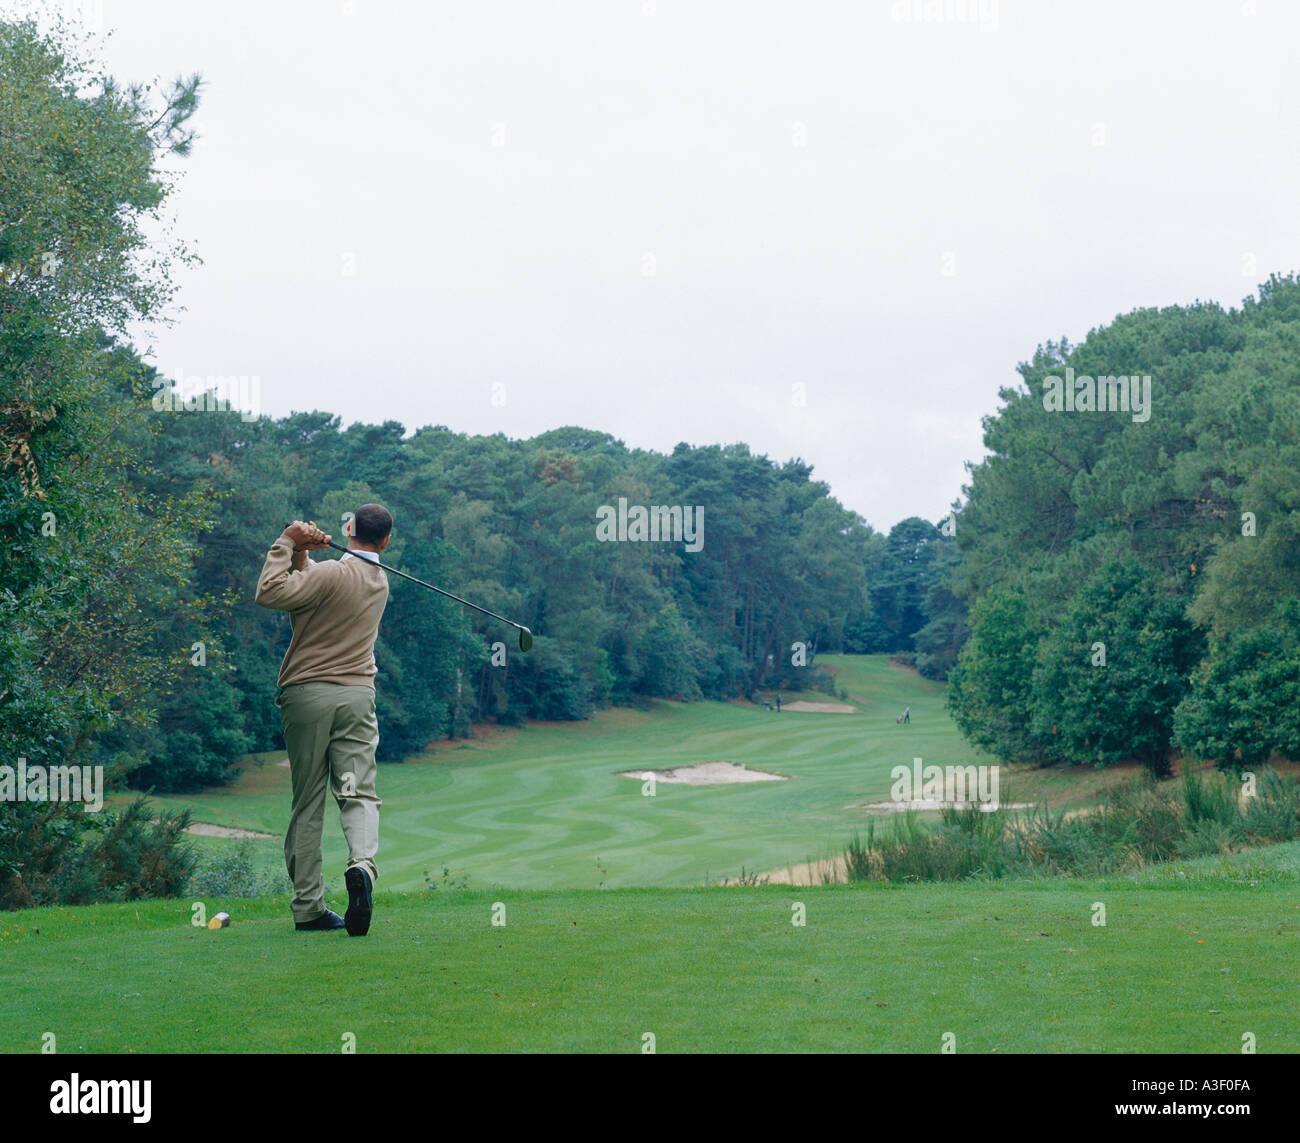 Golfer driving ball down the fairway - Stock Image